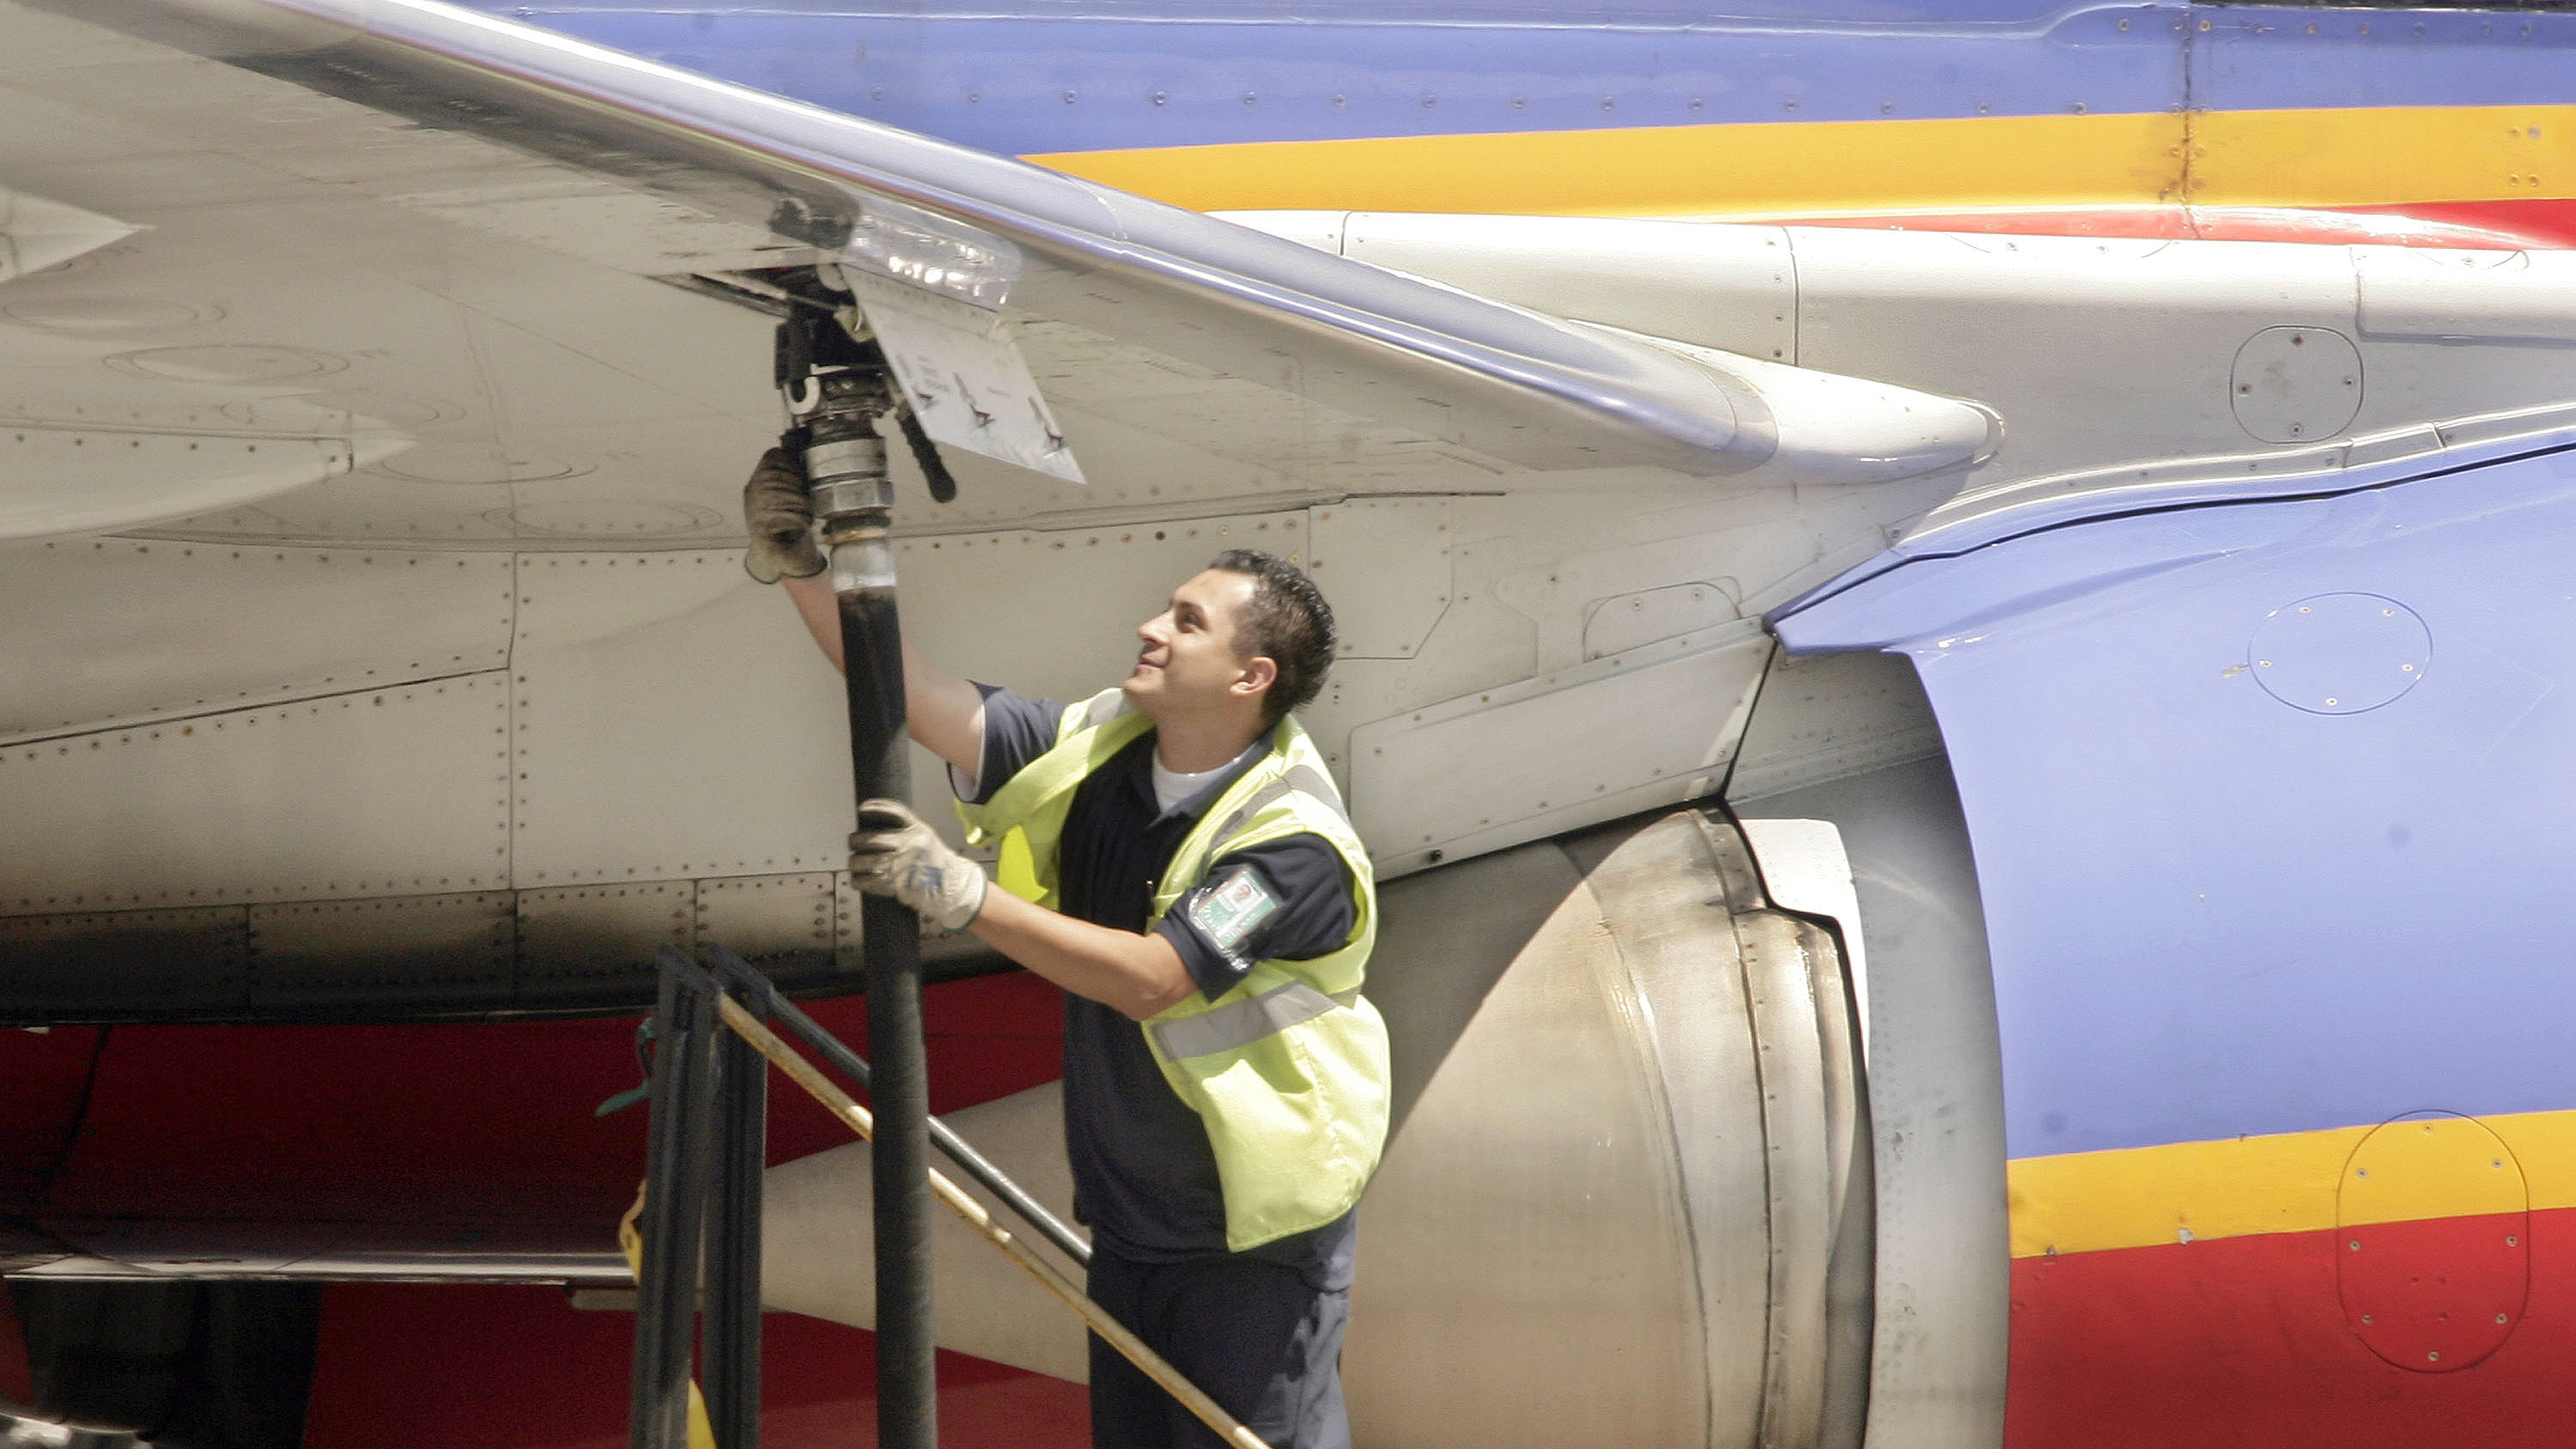 an aviation ground crew member pumps fuel into a Southwest Airlines' plane at Los Angeles International Airport in Los Angeles.